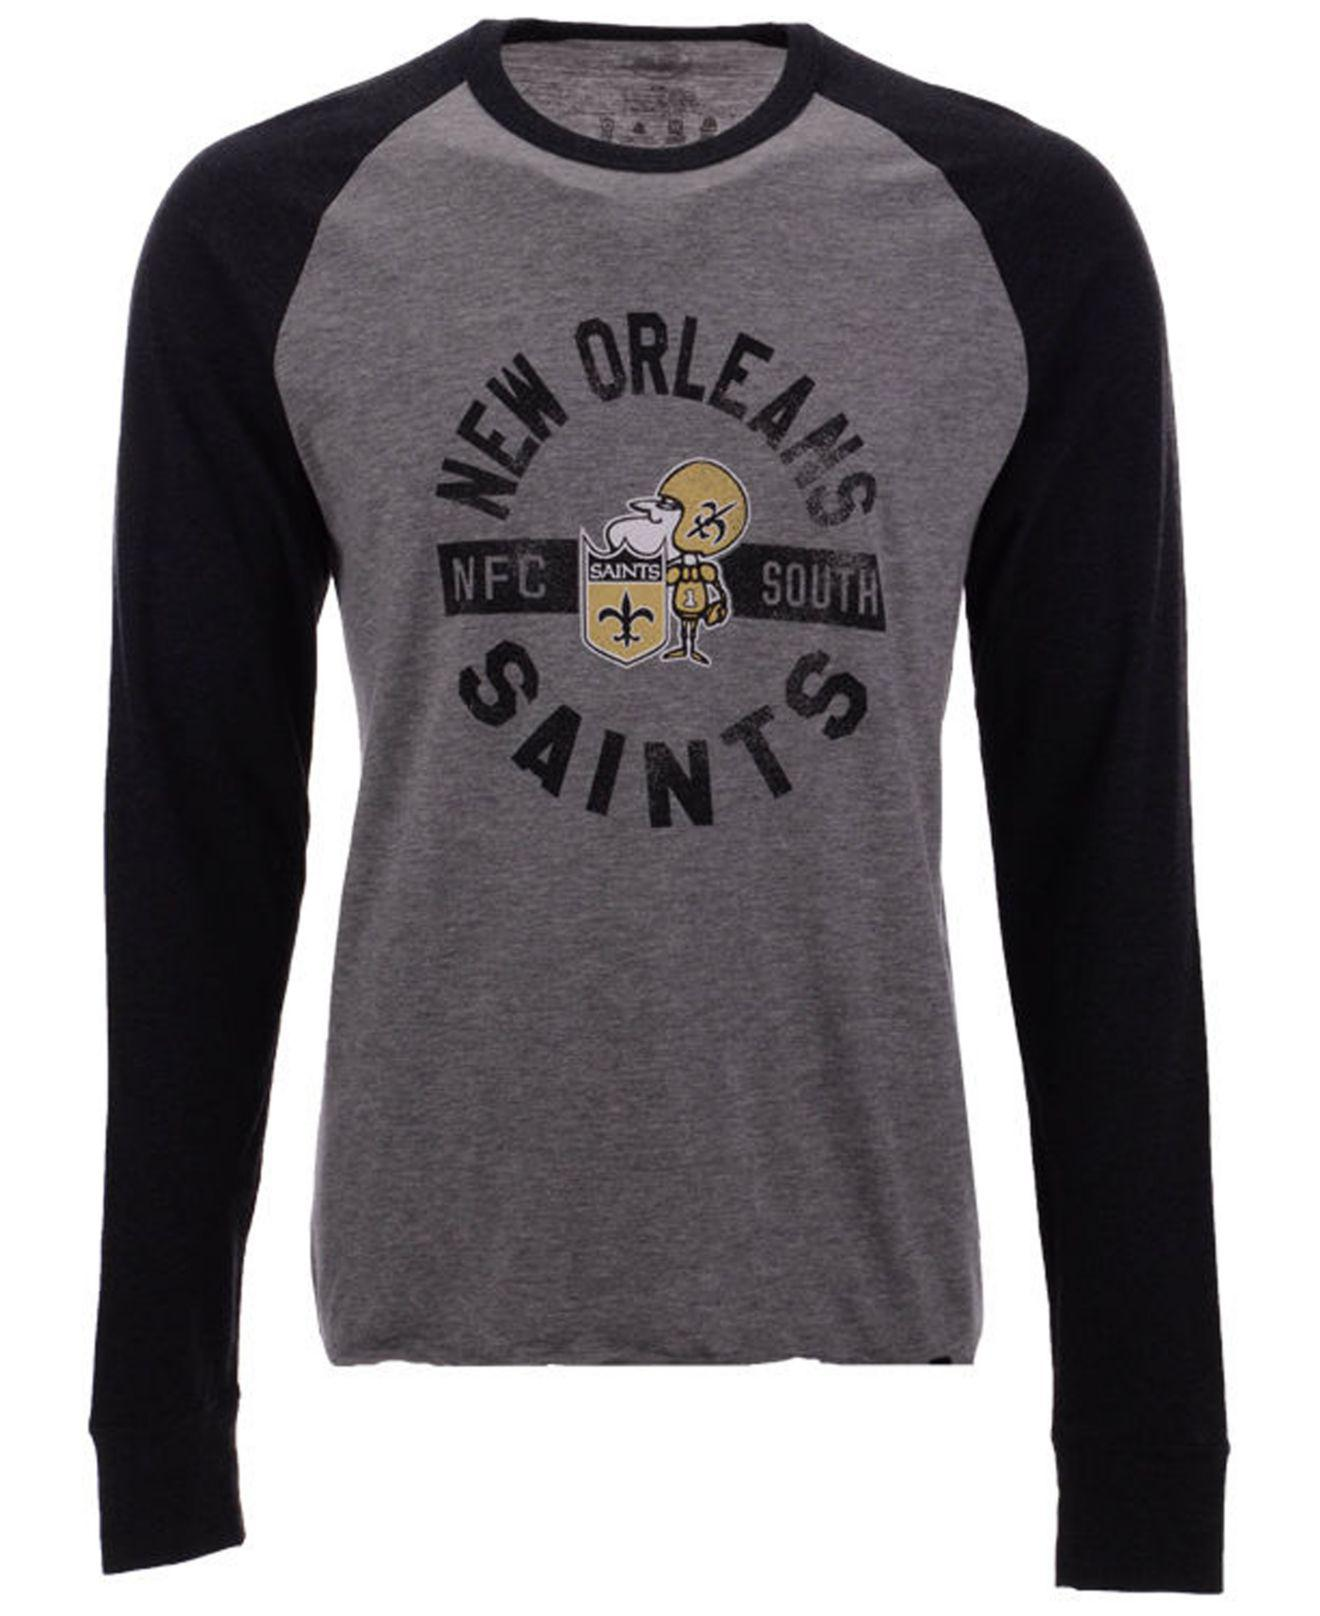 6d6a211f Retro New Orleans Saints T Shirt – EDGE Engineering and Consulting ...